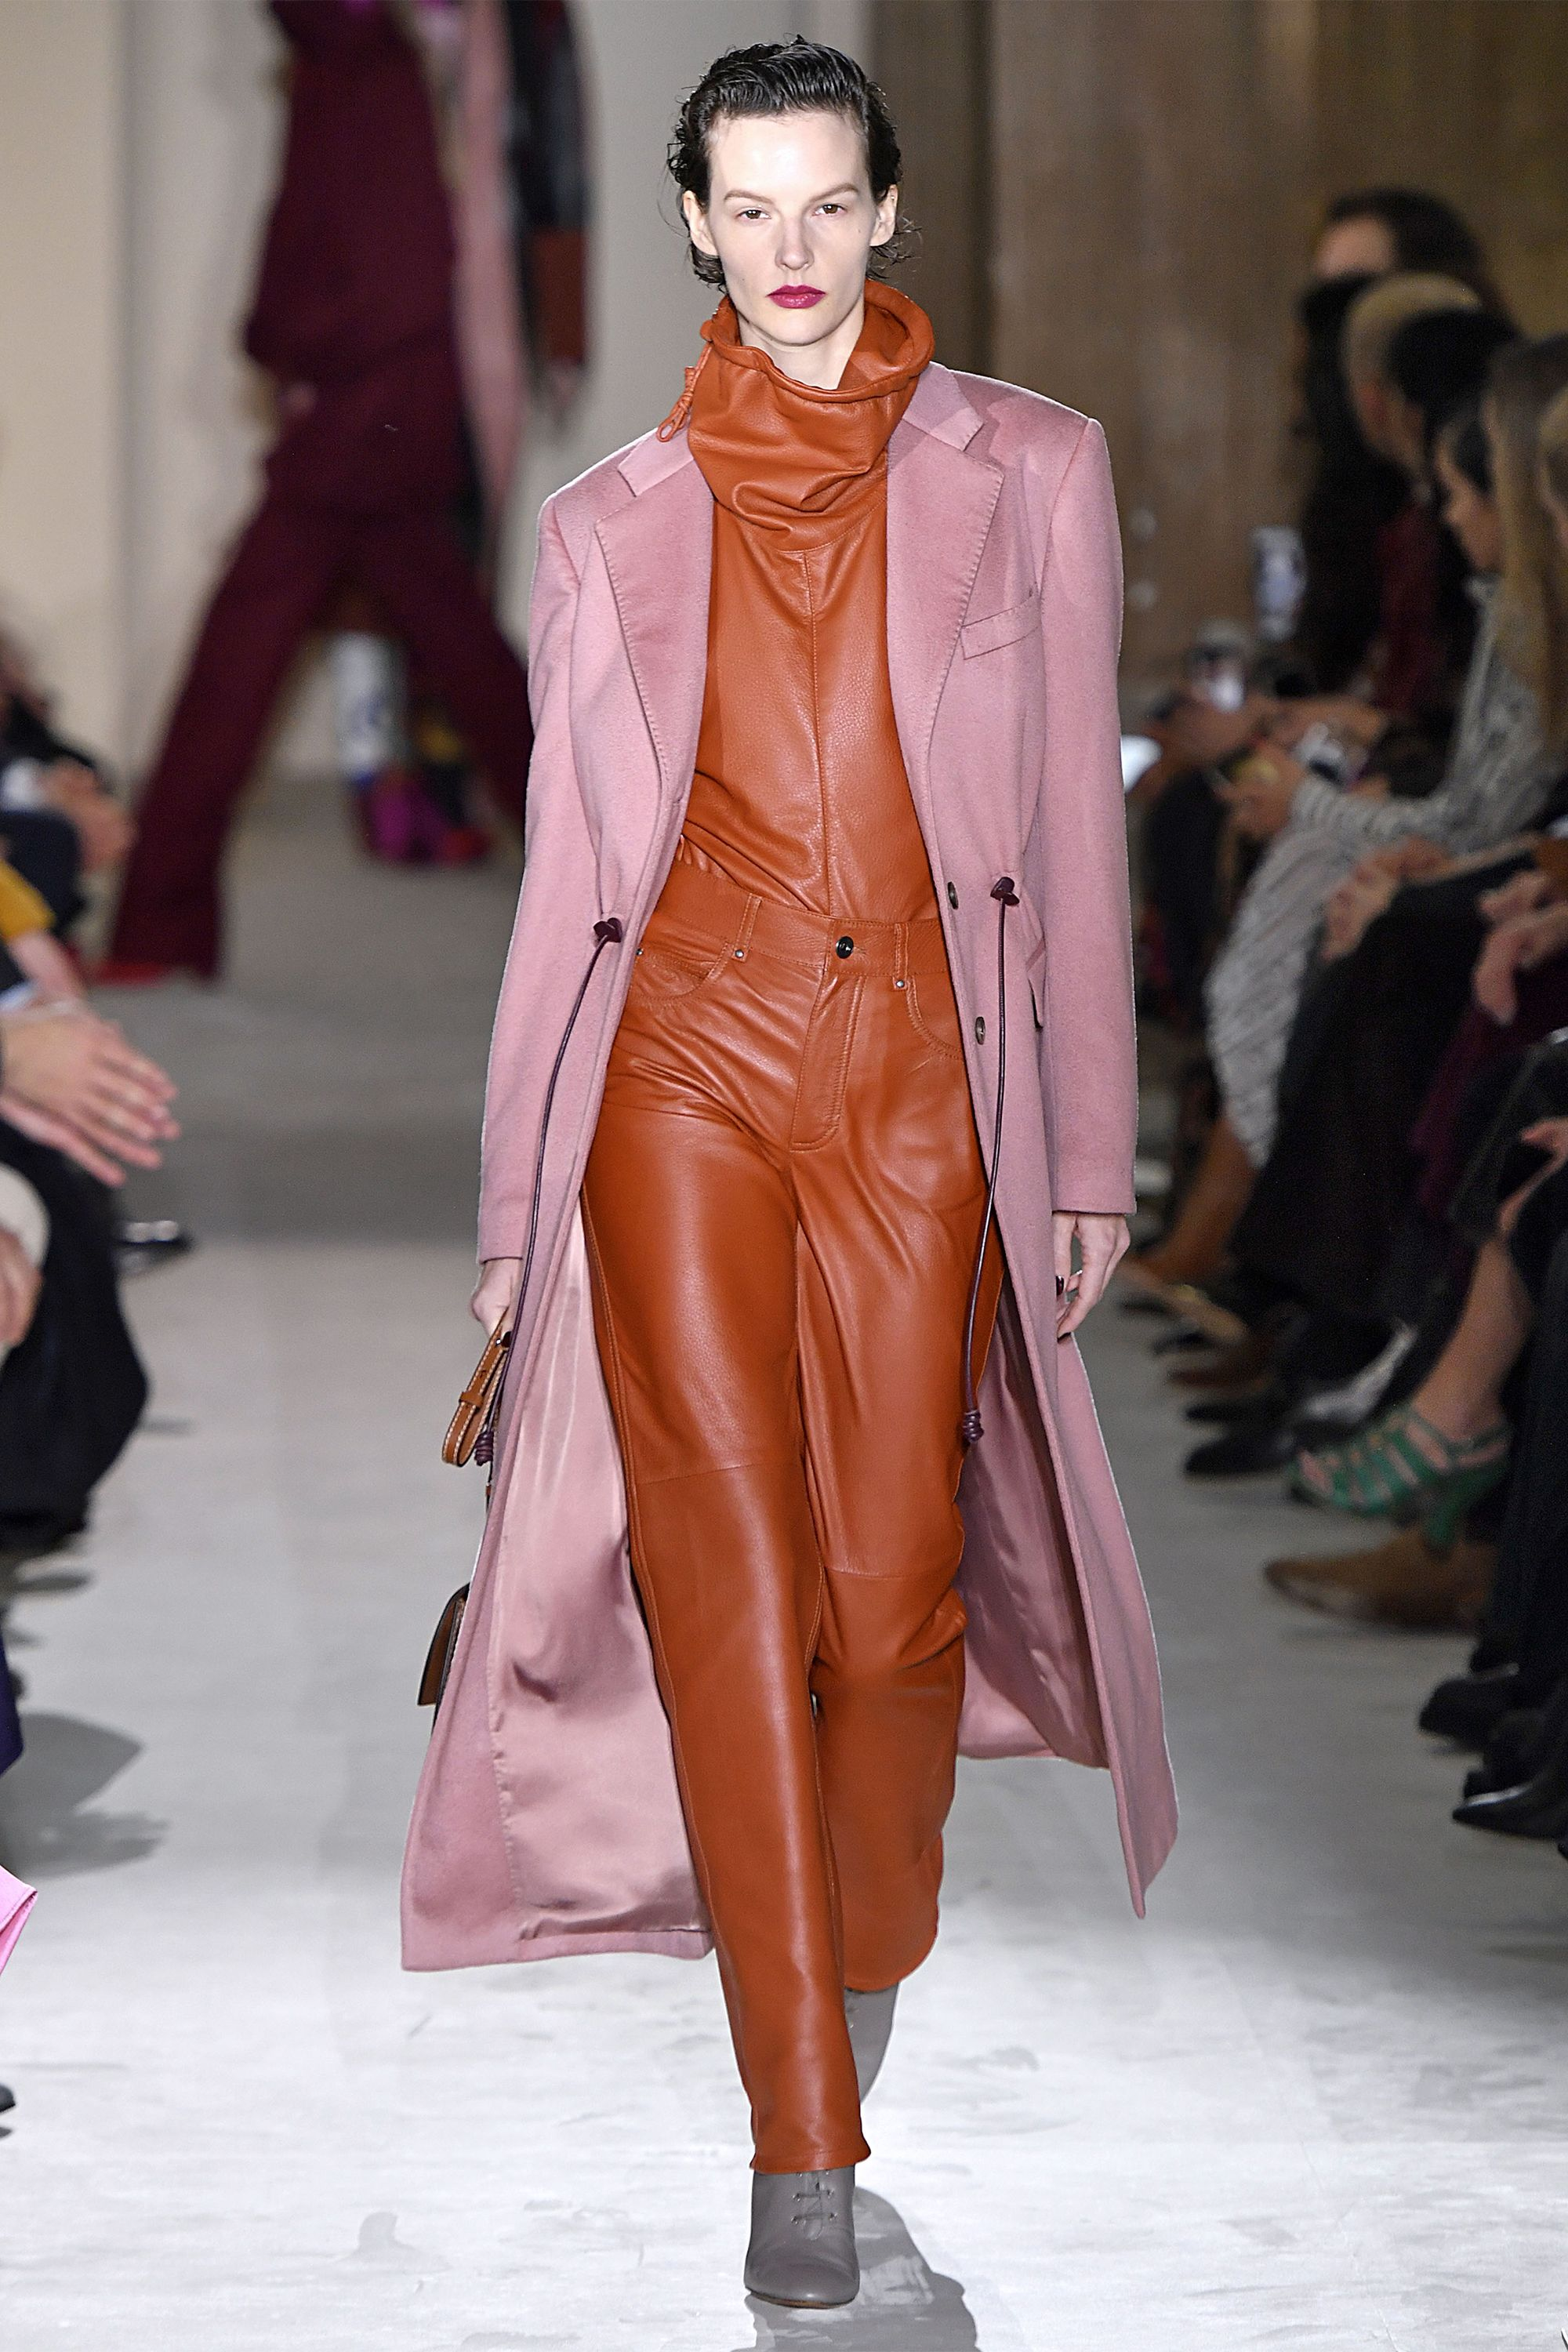 Salvatore Ferragamo - Runway - Milan Fashion Week Autumn/Winter 2019/20